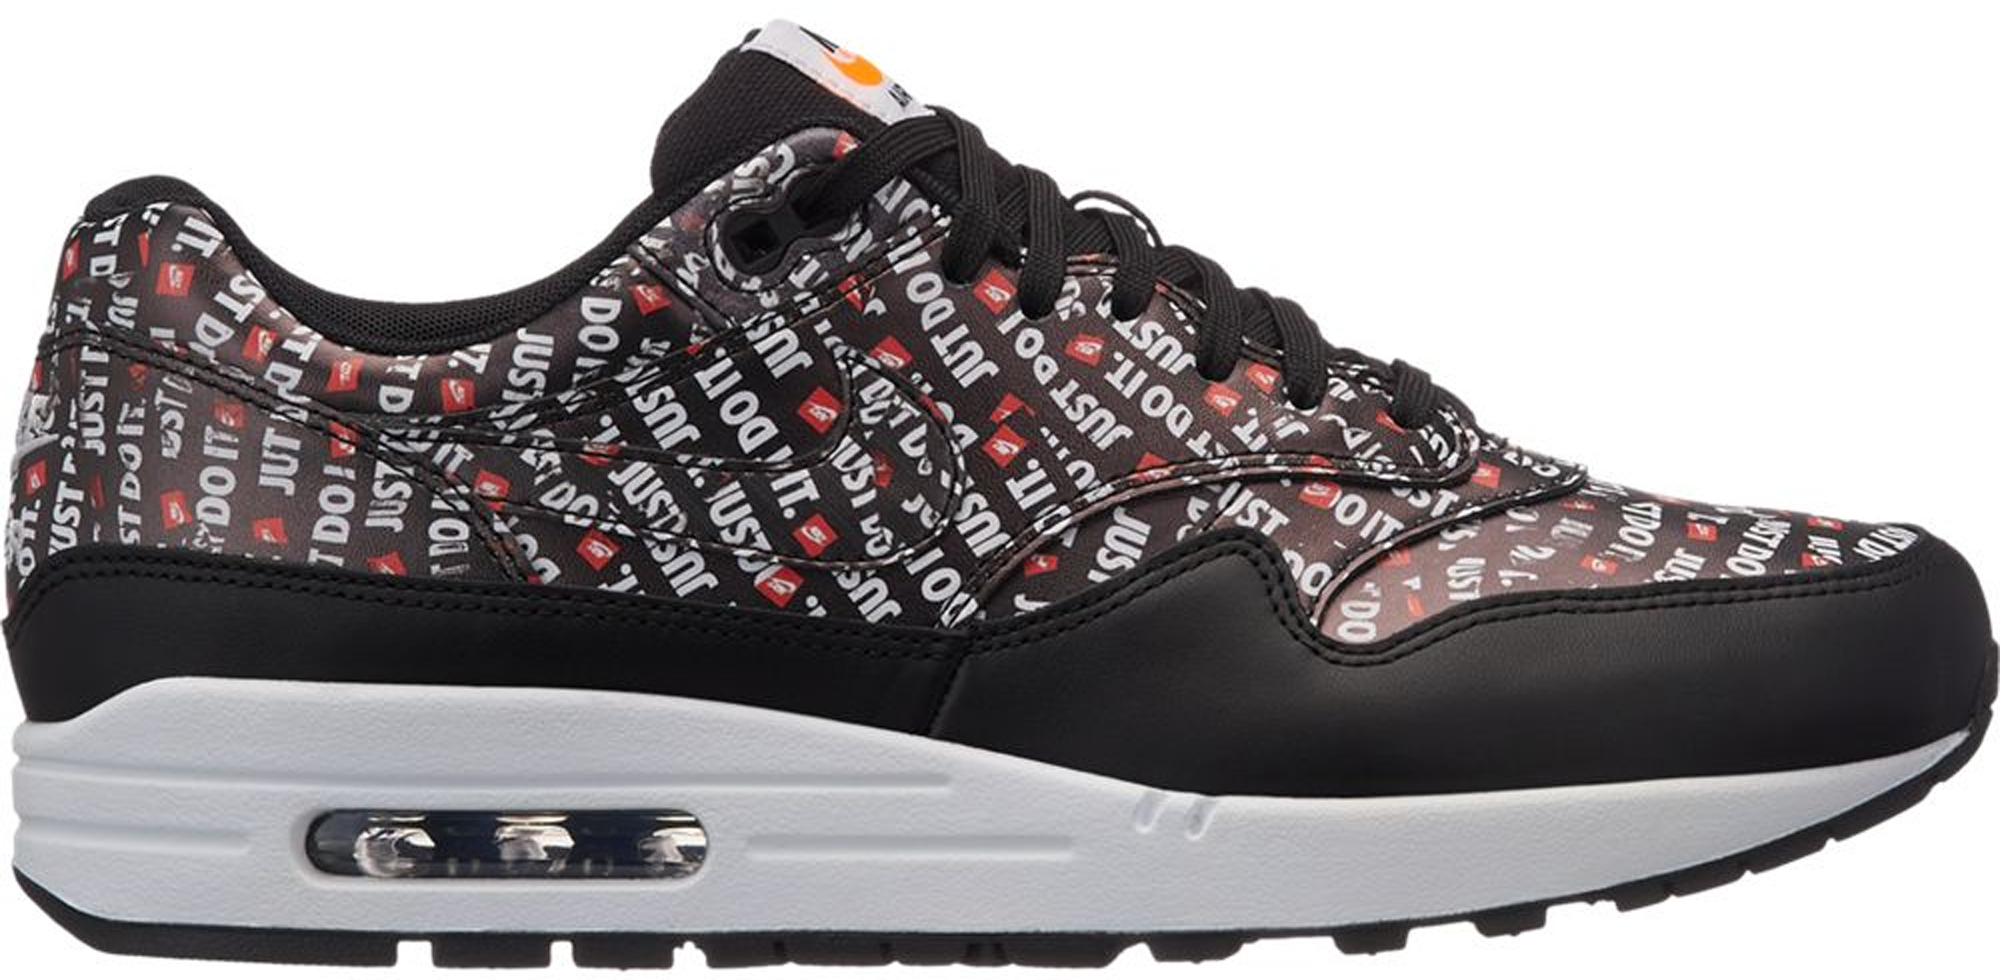 Air Max 1 Just Do It Pack Black